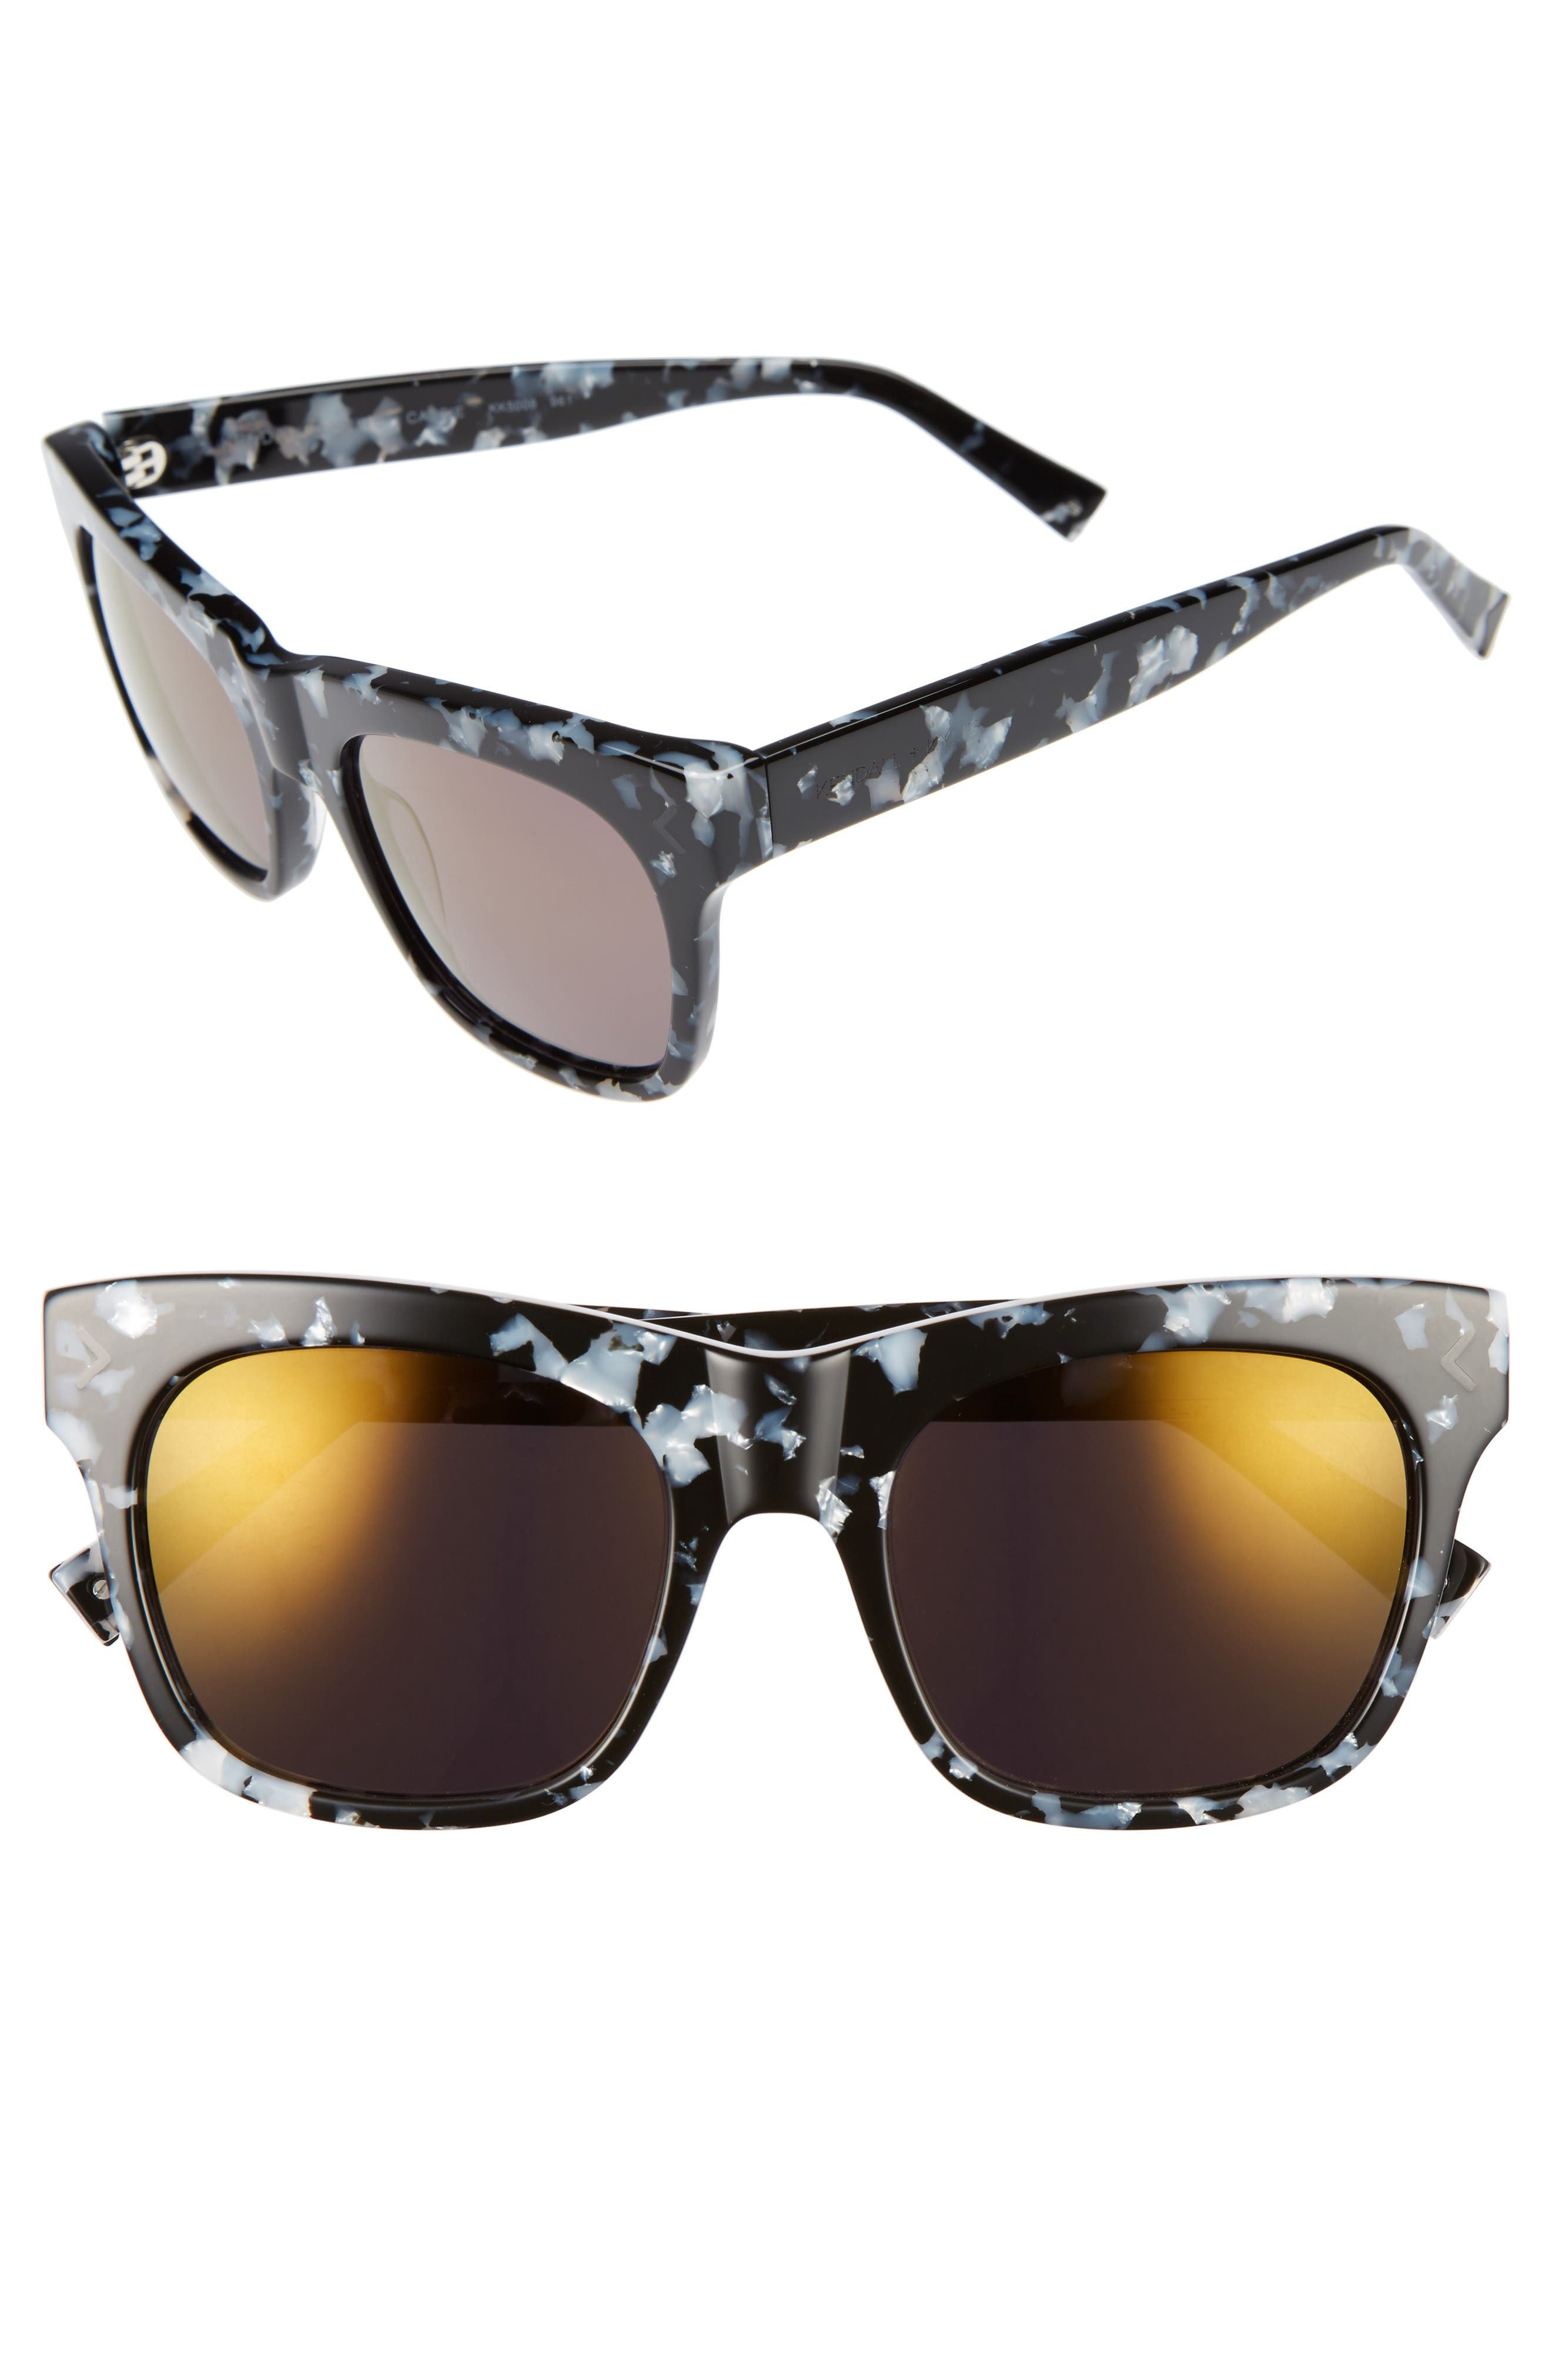 Alternate Image 1 Selected - KENDALL + KYLIE Cassie 54mm Sunglasses